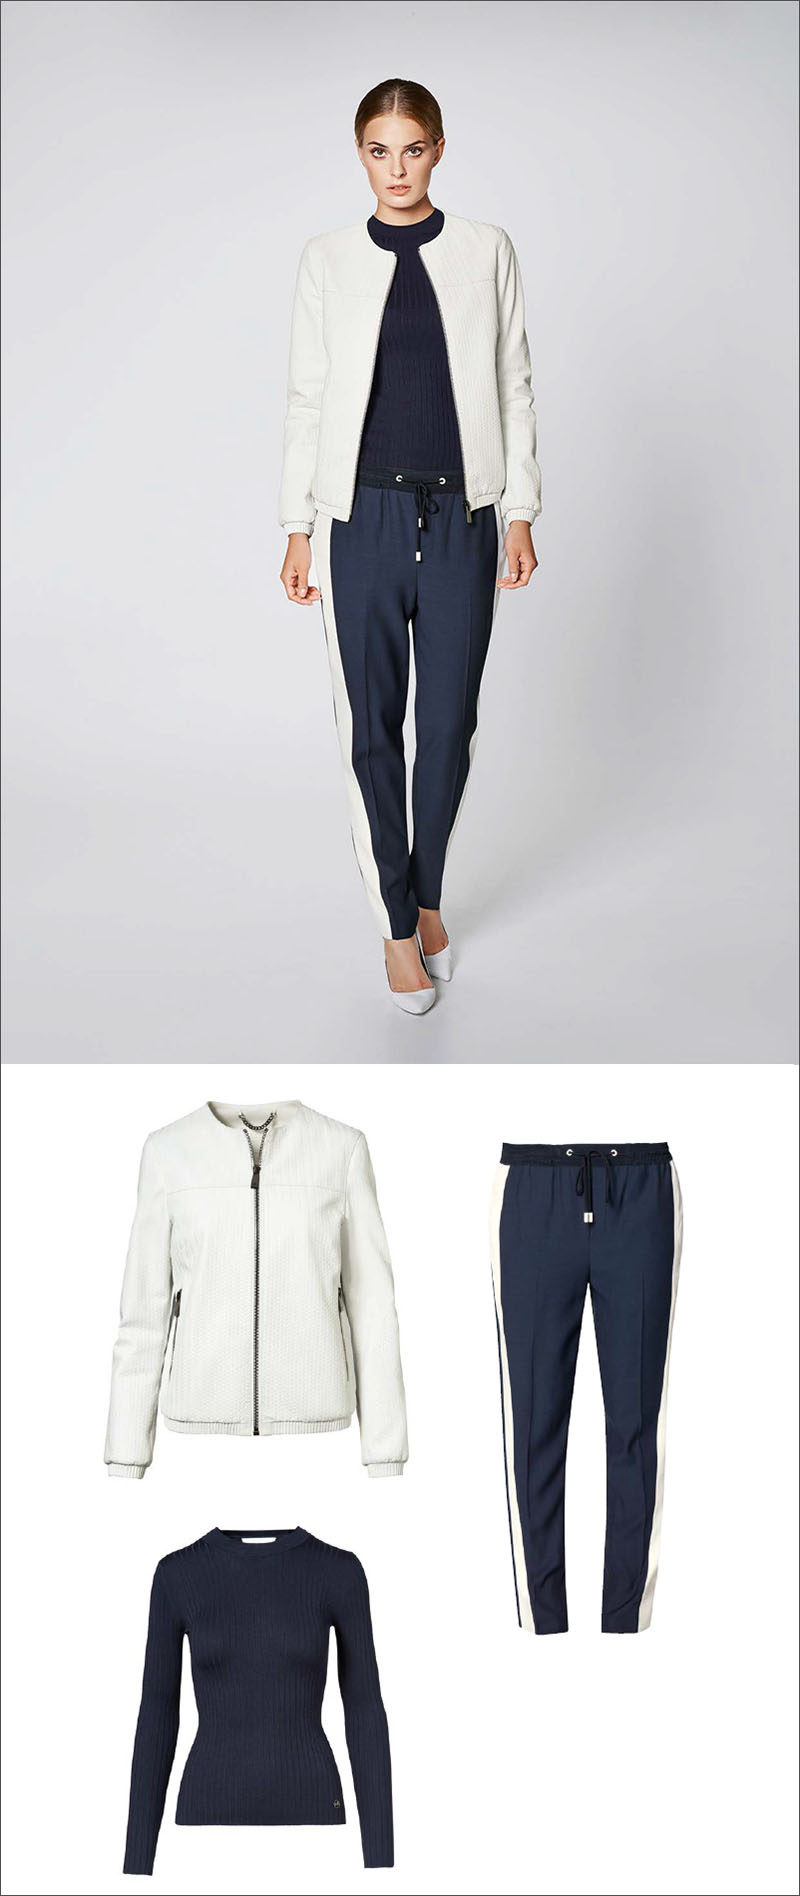 Women's Fashion Ideas - 12 Womens Outfits From Porsche Design's 2017 Spring/Summer Collection // Casual pants have been dressed up with a navy crew neck sweater and light weight white jacket.